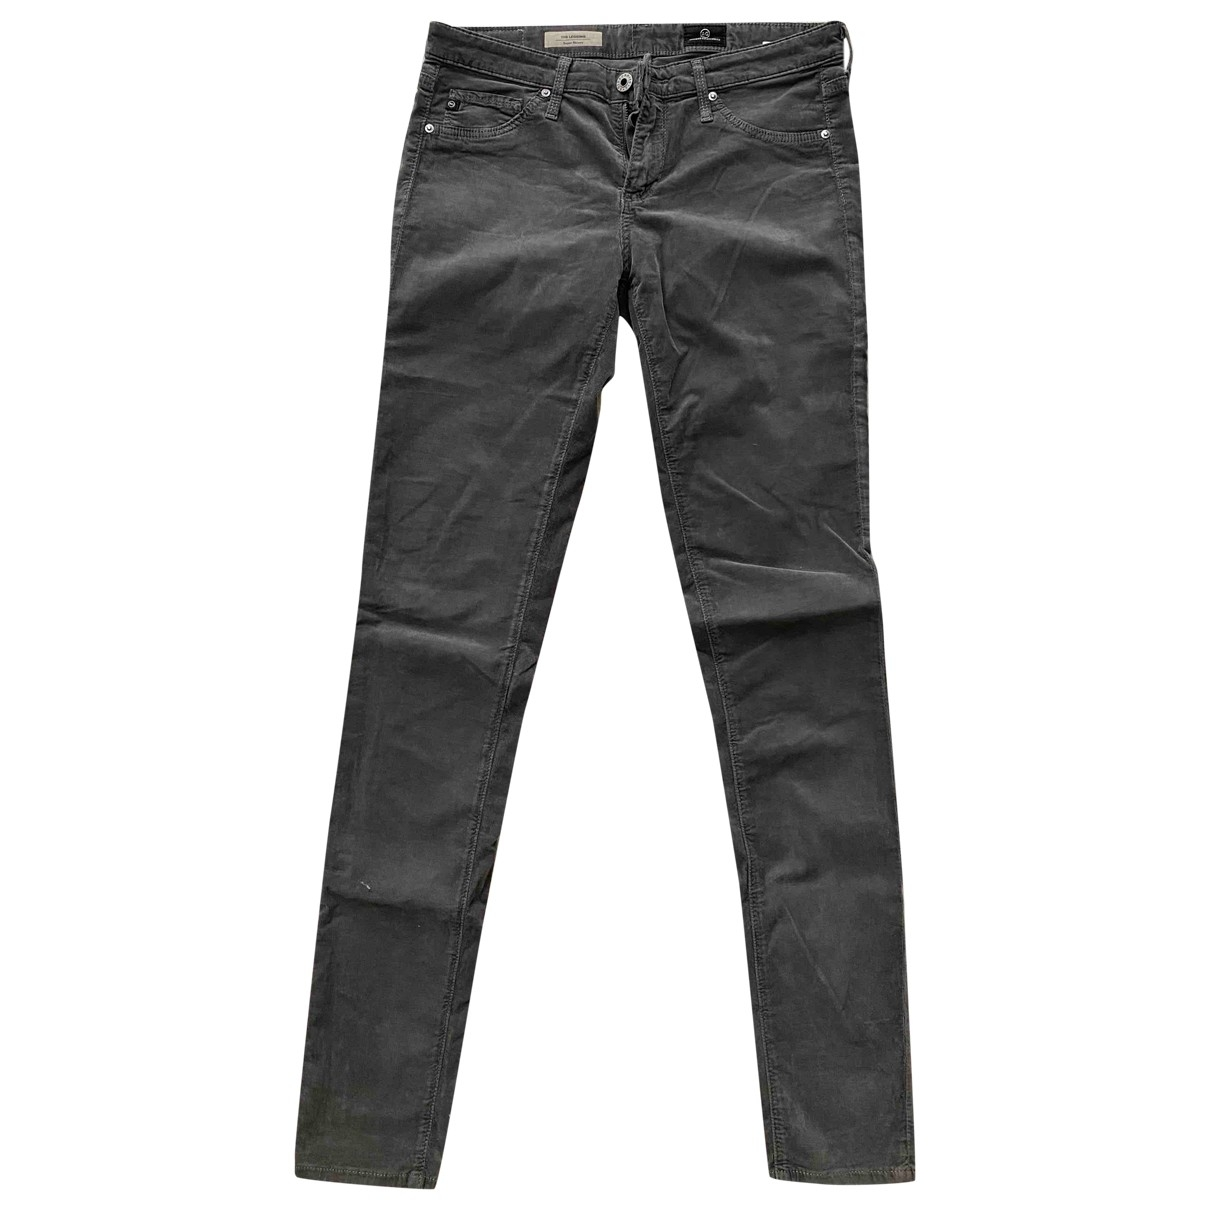 Adriano Goldschmied \N Grey Cotton Jeans for Women 27 US